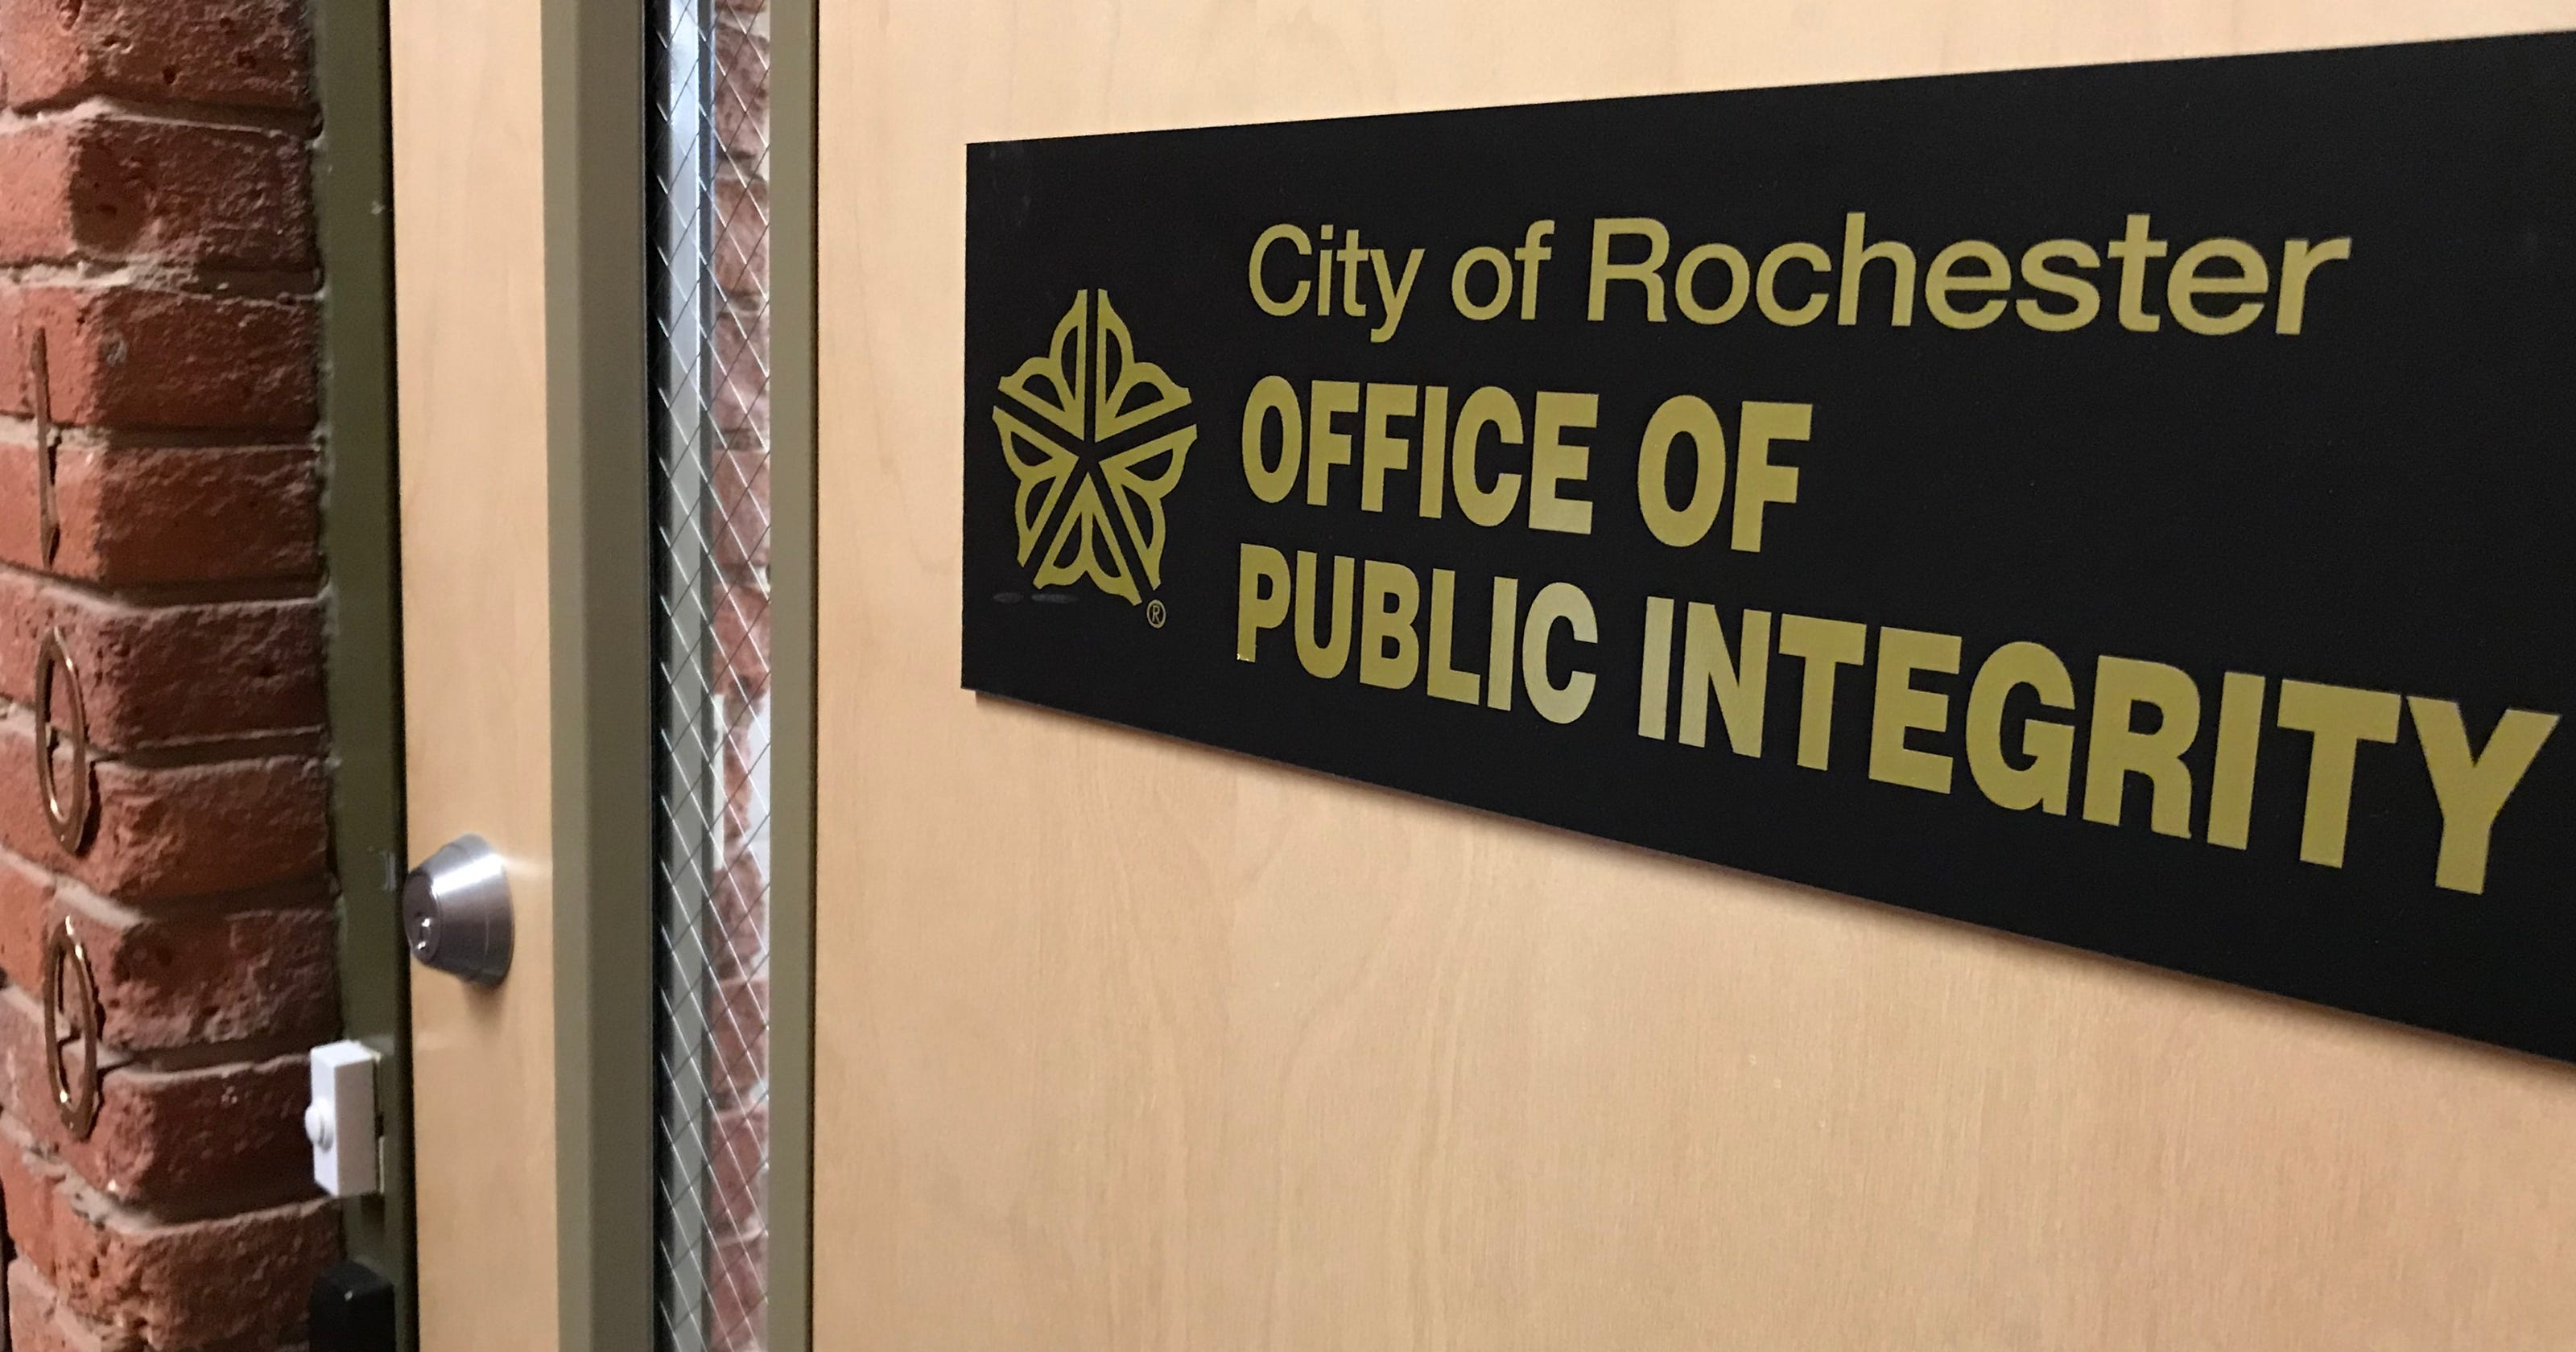 Investigation: Has Rochester Office of Public Integrity lost its bite?